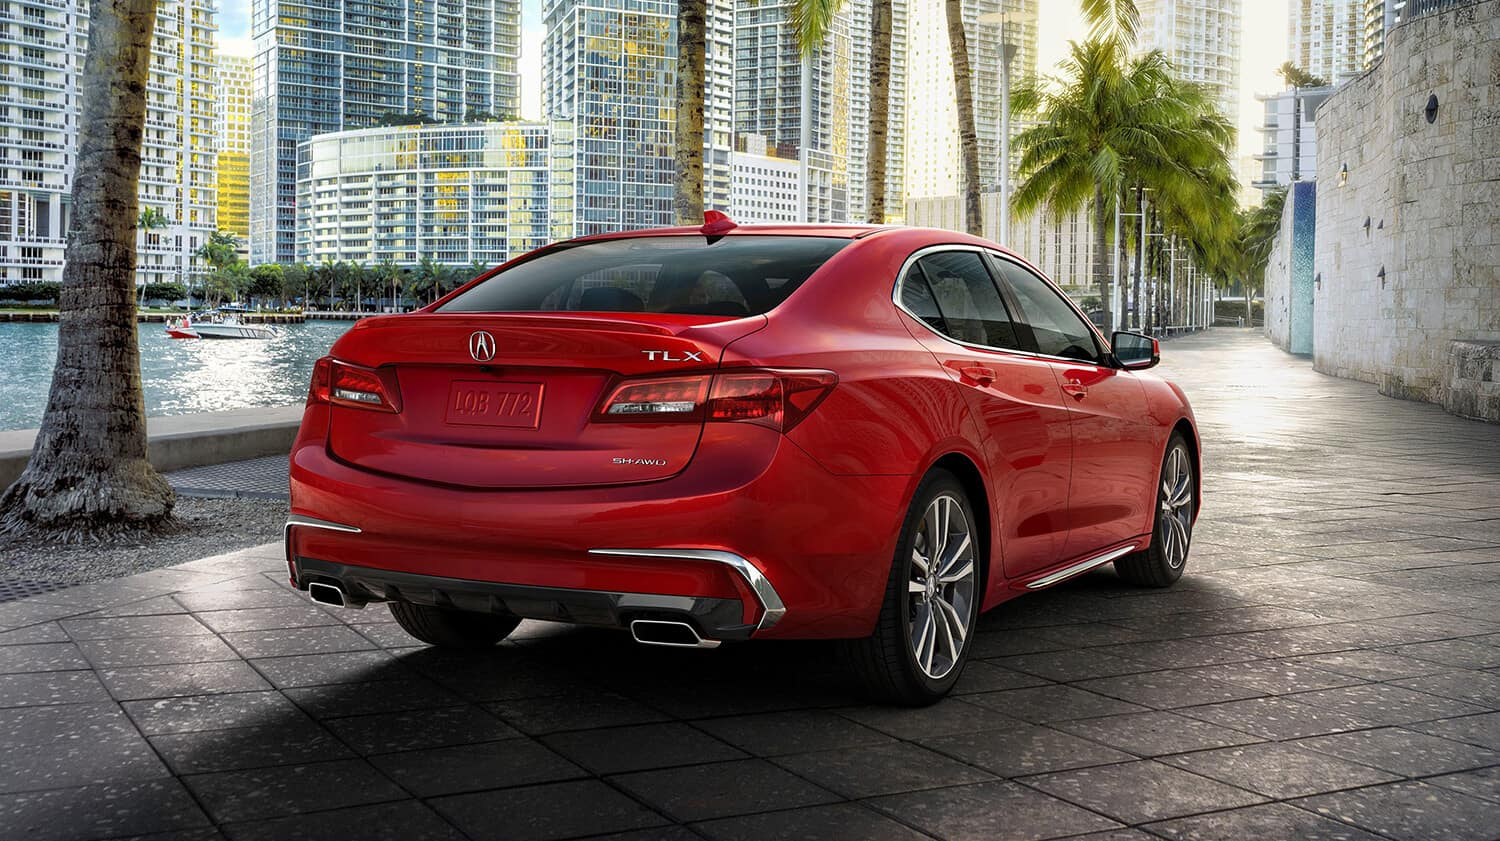 2020 Acura Tlx Performance Luxury Sedan Rocky Mountain Acura Dealers